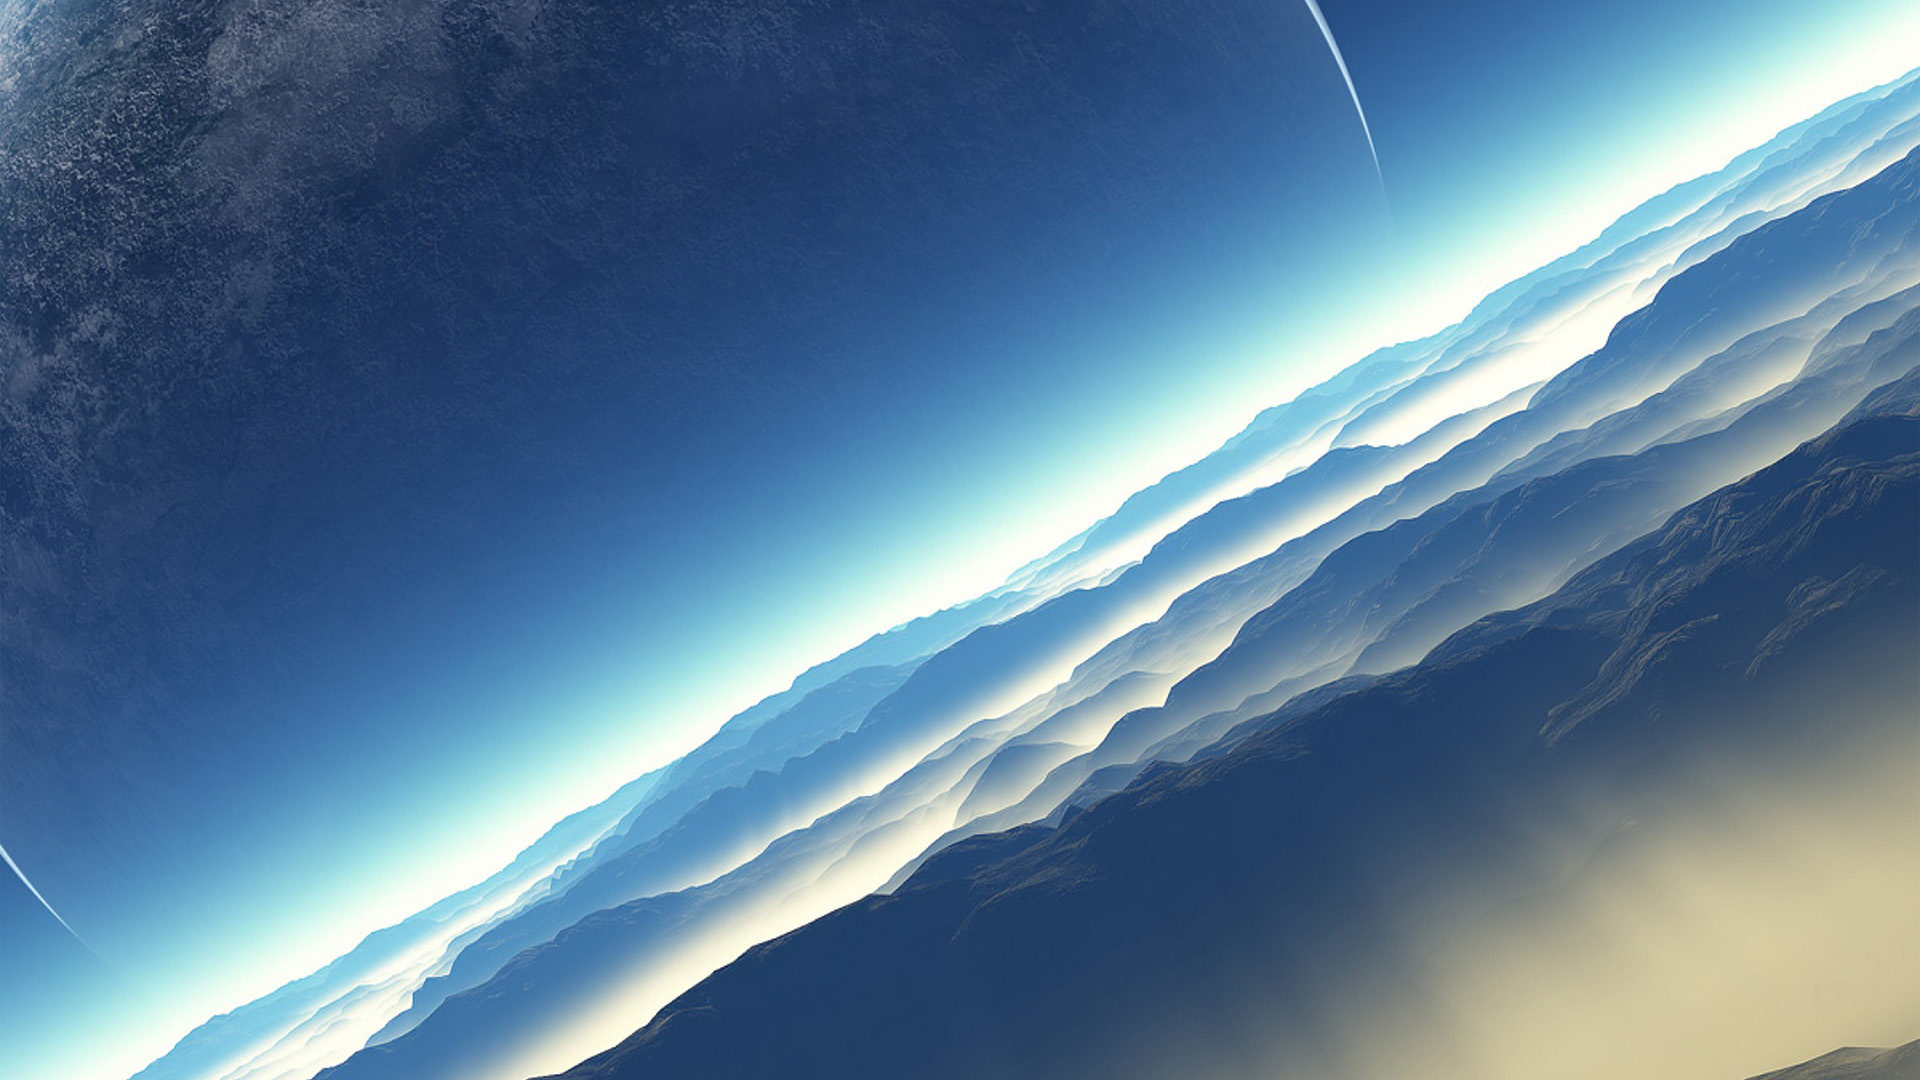 ... wallpaper, ilovewallpaper, ilovepapers, aq81-space-new-planet-mars